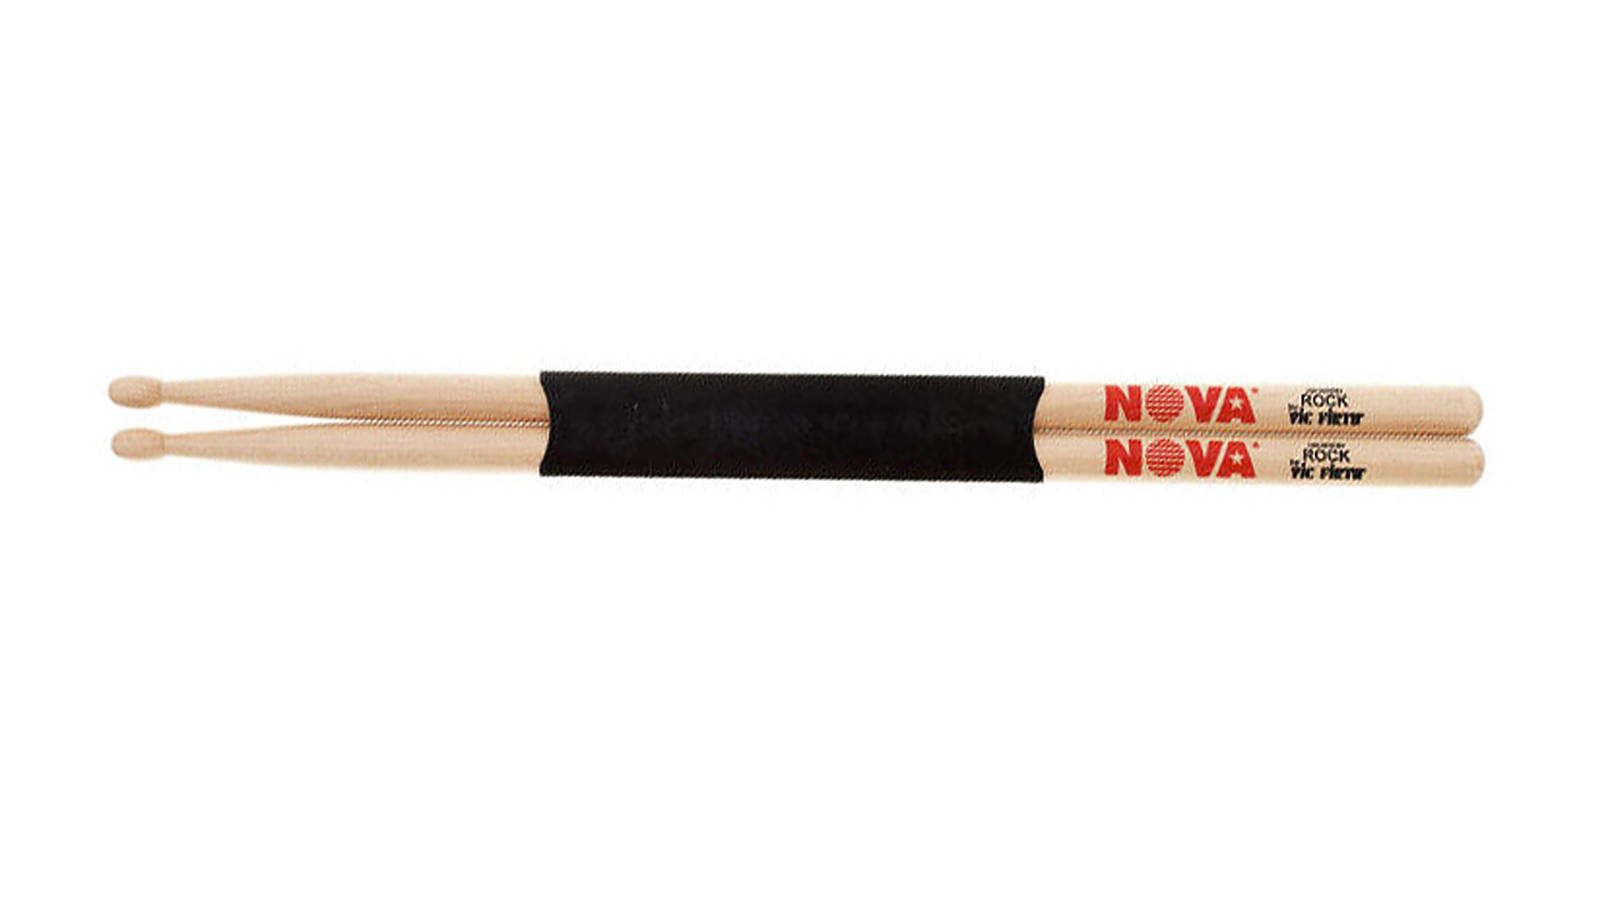 Nova by Vic Firth Sticks Rock